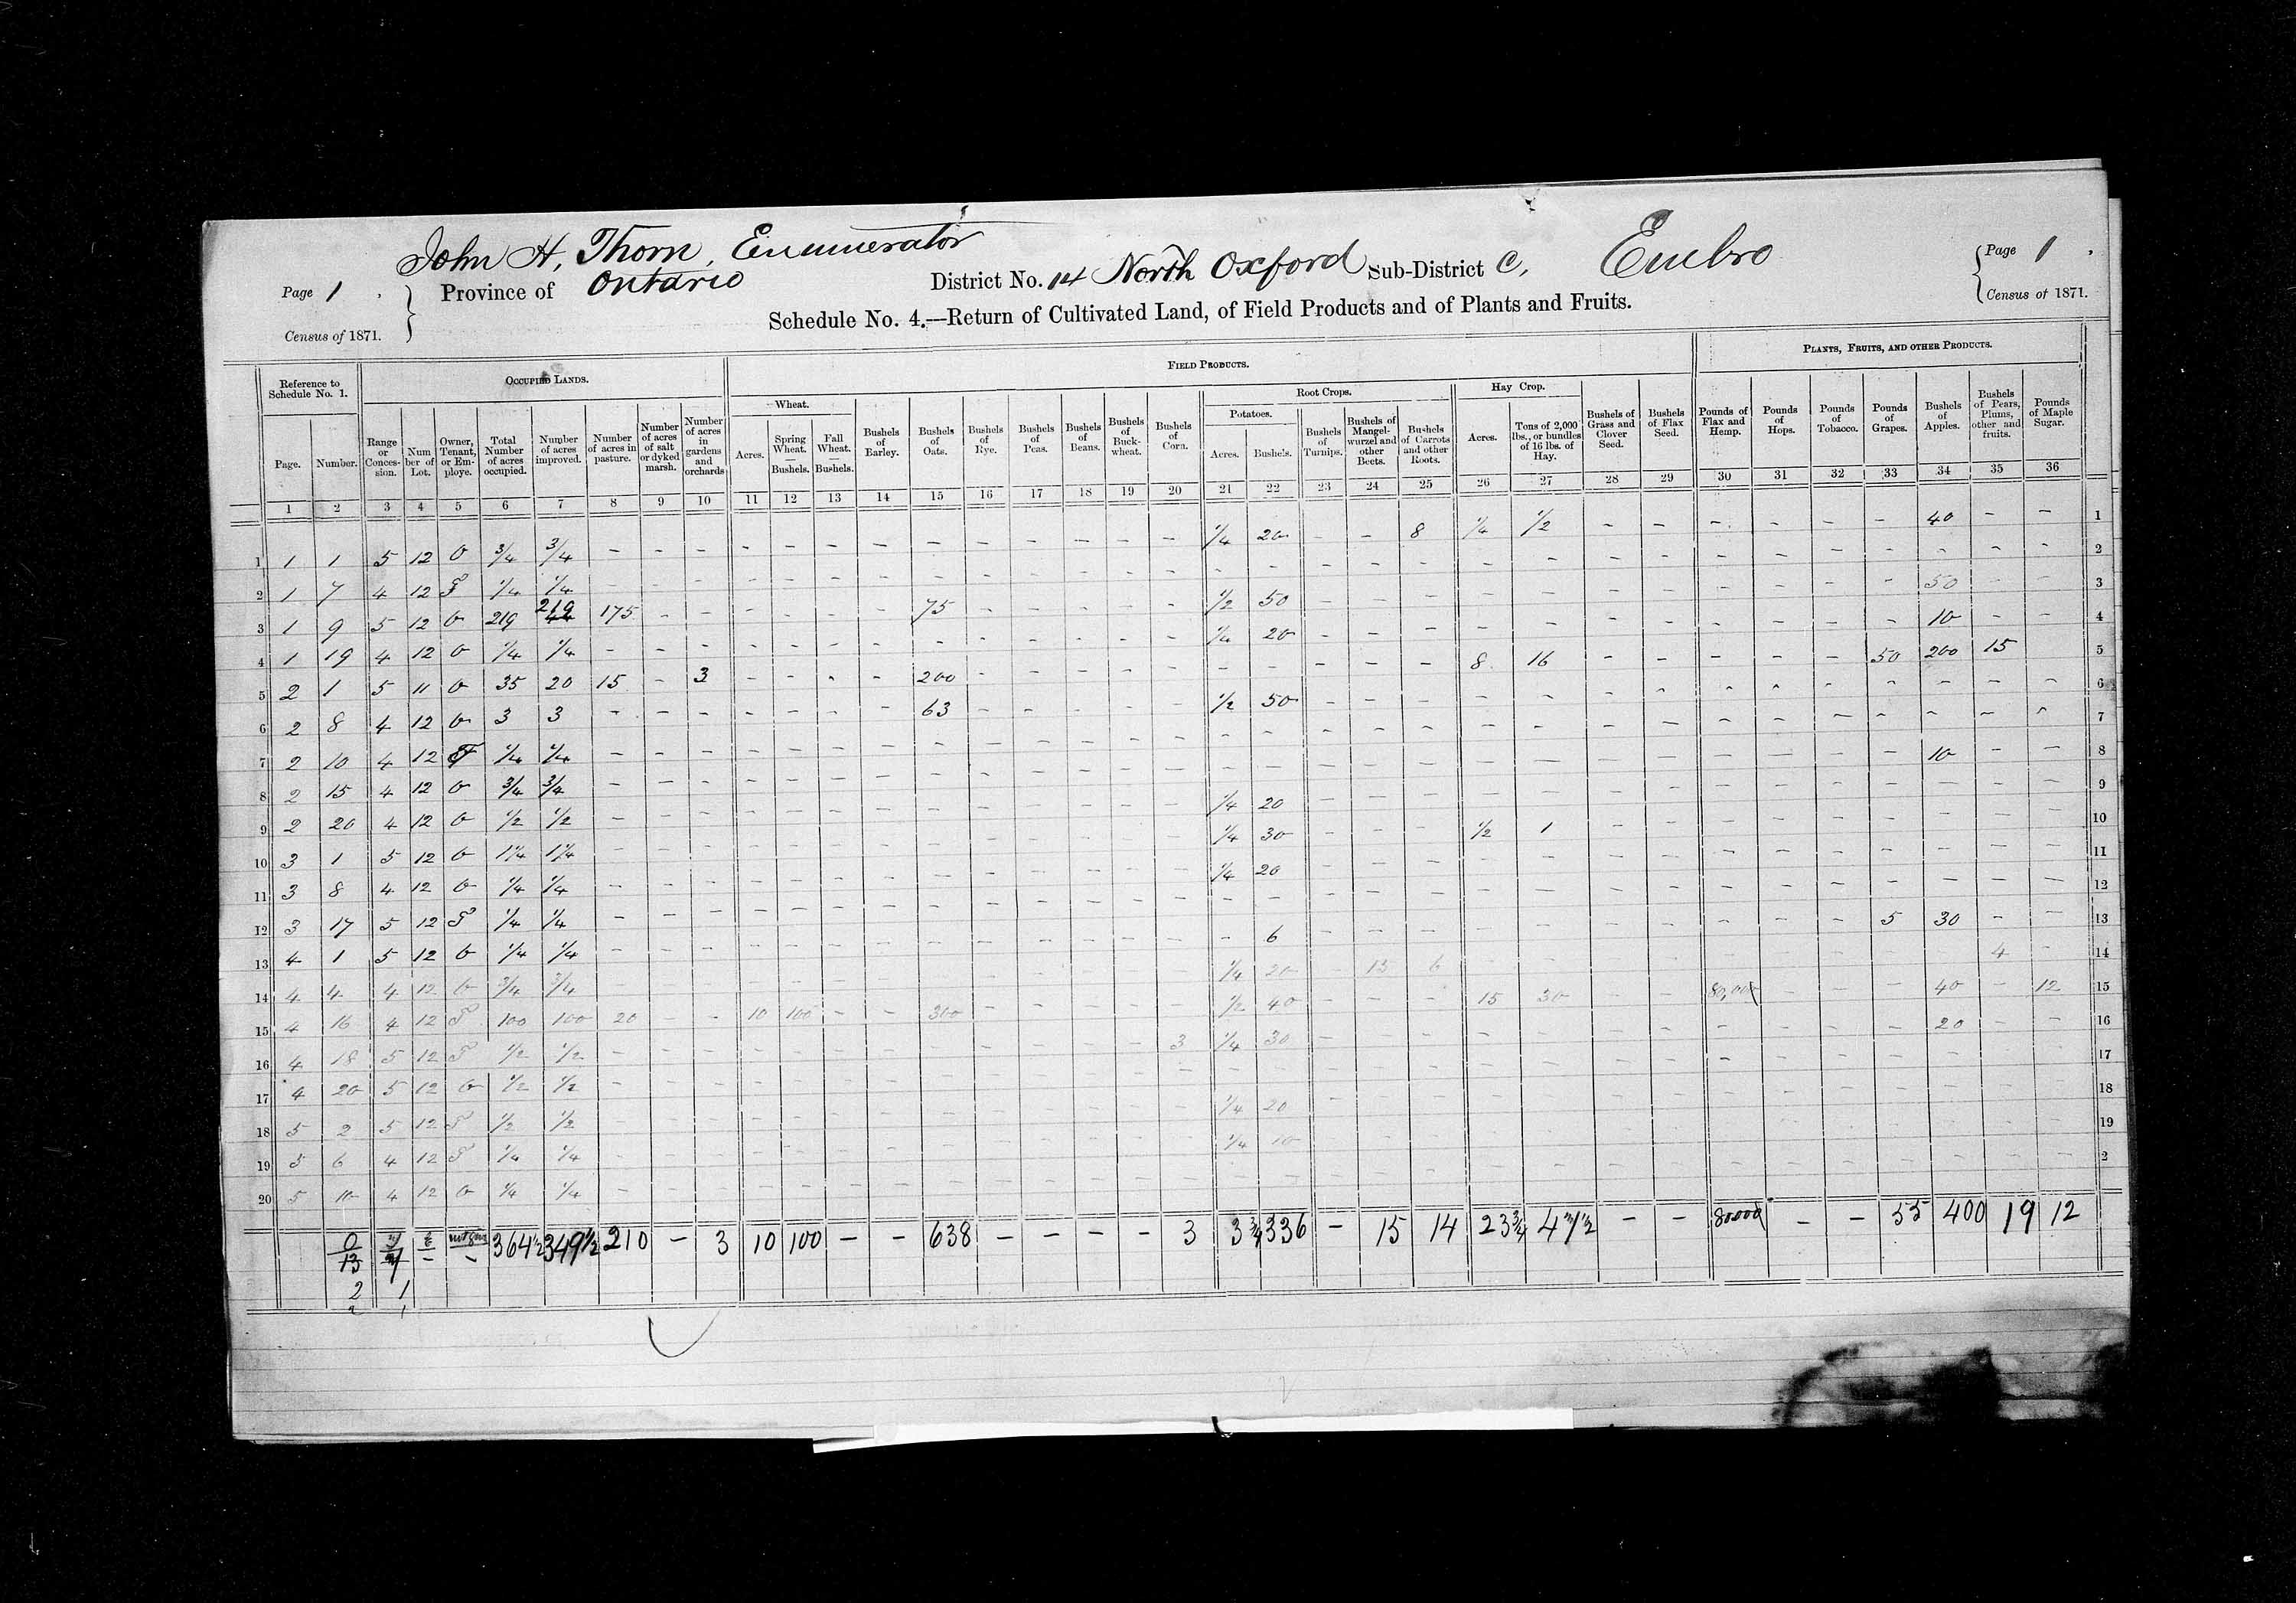 Title: Census of Canada, 1871 - Mikan Number: 142105 - Microform: c-9912